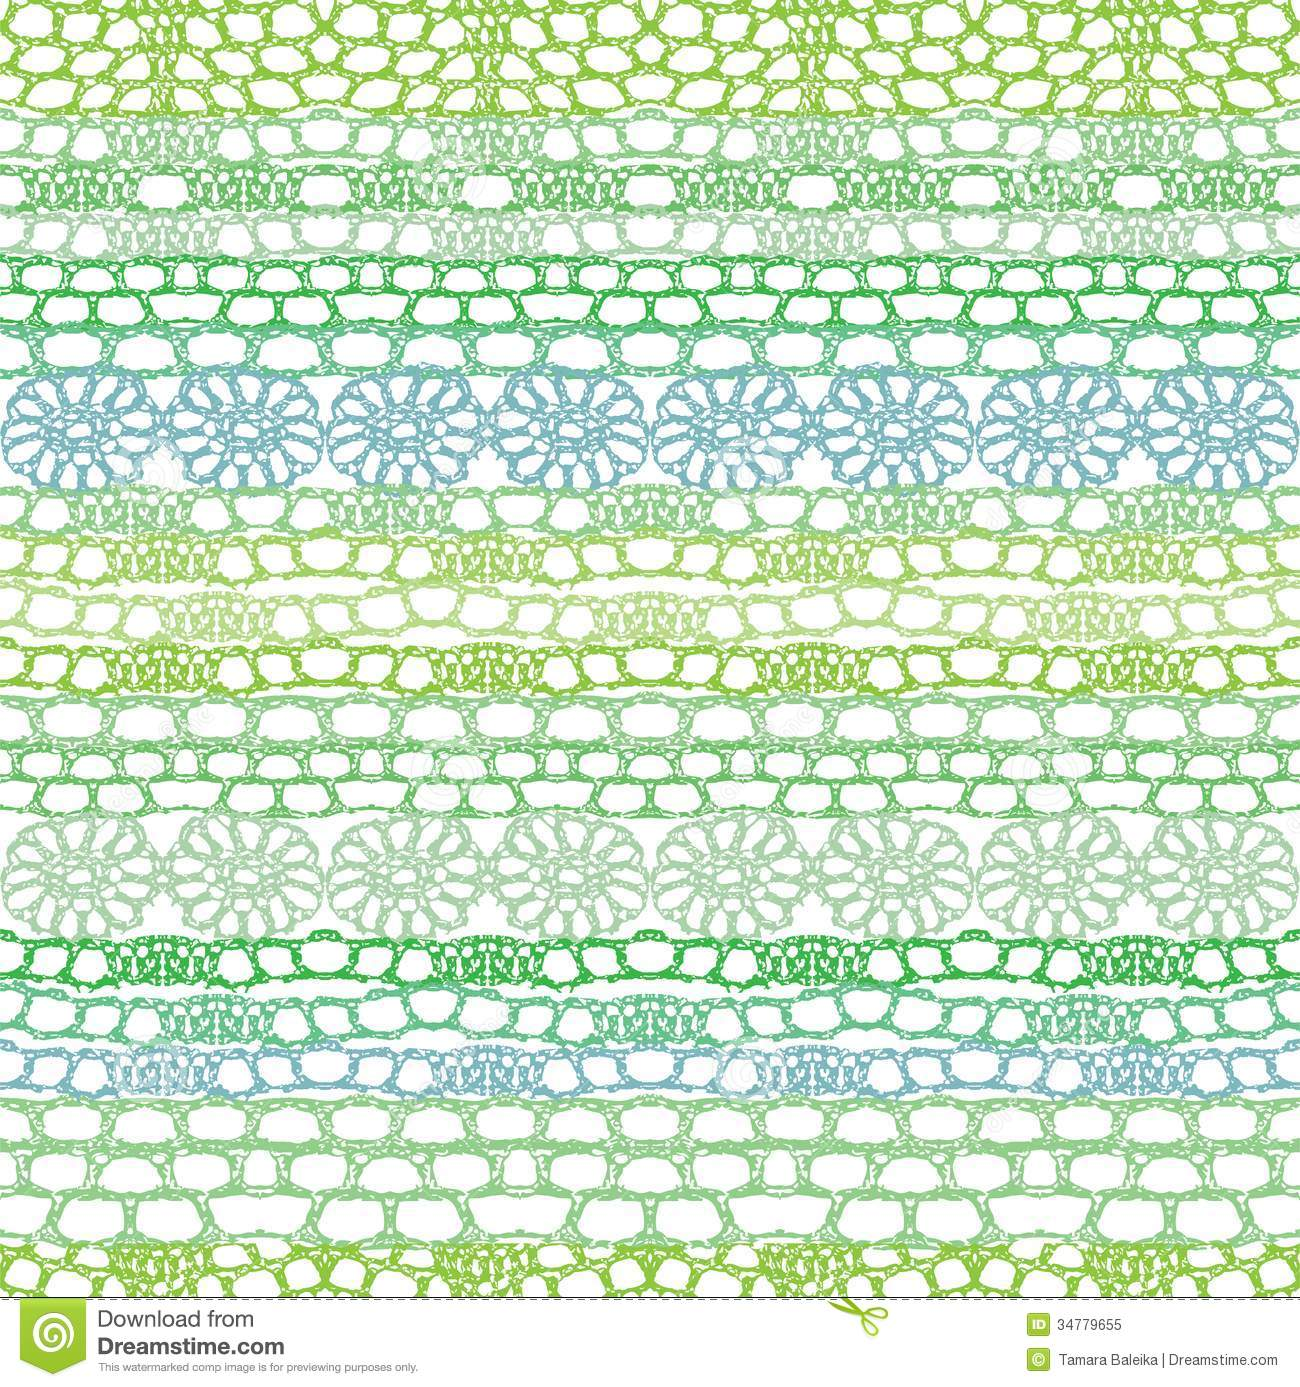 Crochet Patterns Vector : Lace seamless crochet pattern. Vector background.